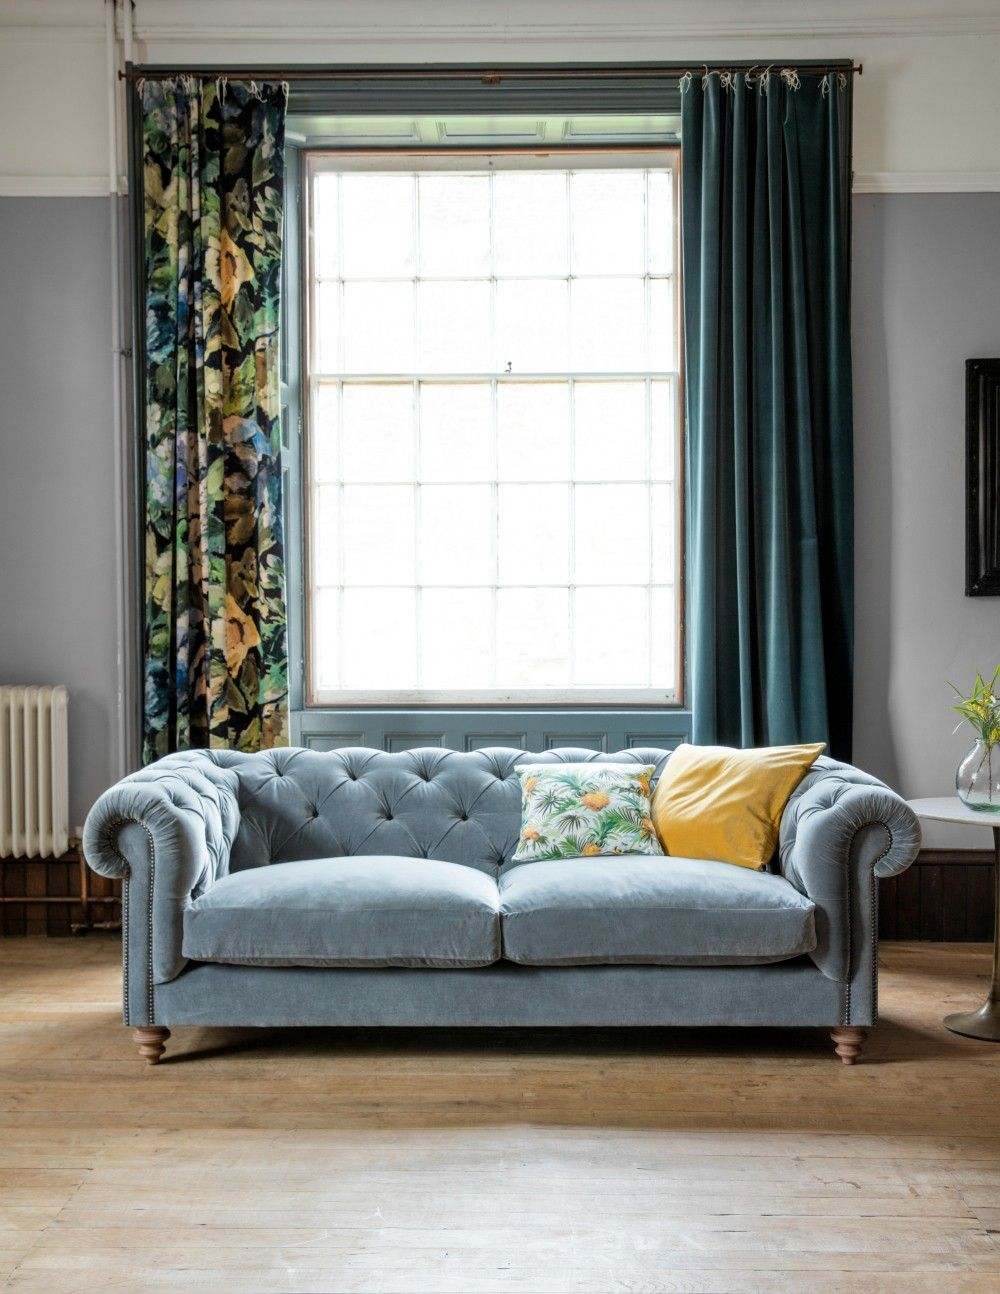 Chesterfield sofa modern grau  Albert Chesterfield Sofa - Available in 17 Colours and 2 Sizes ...